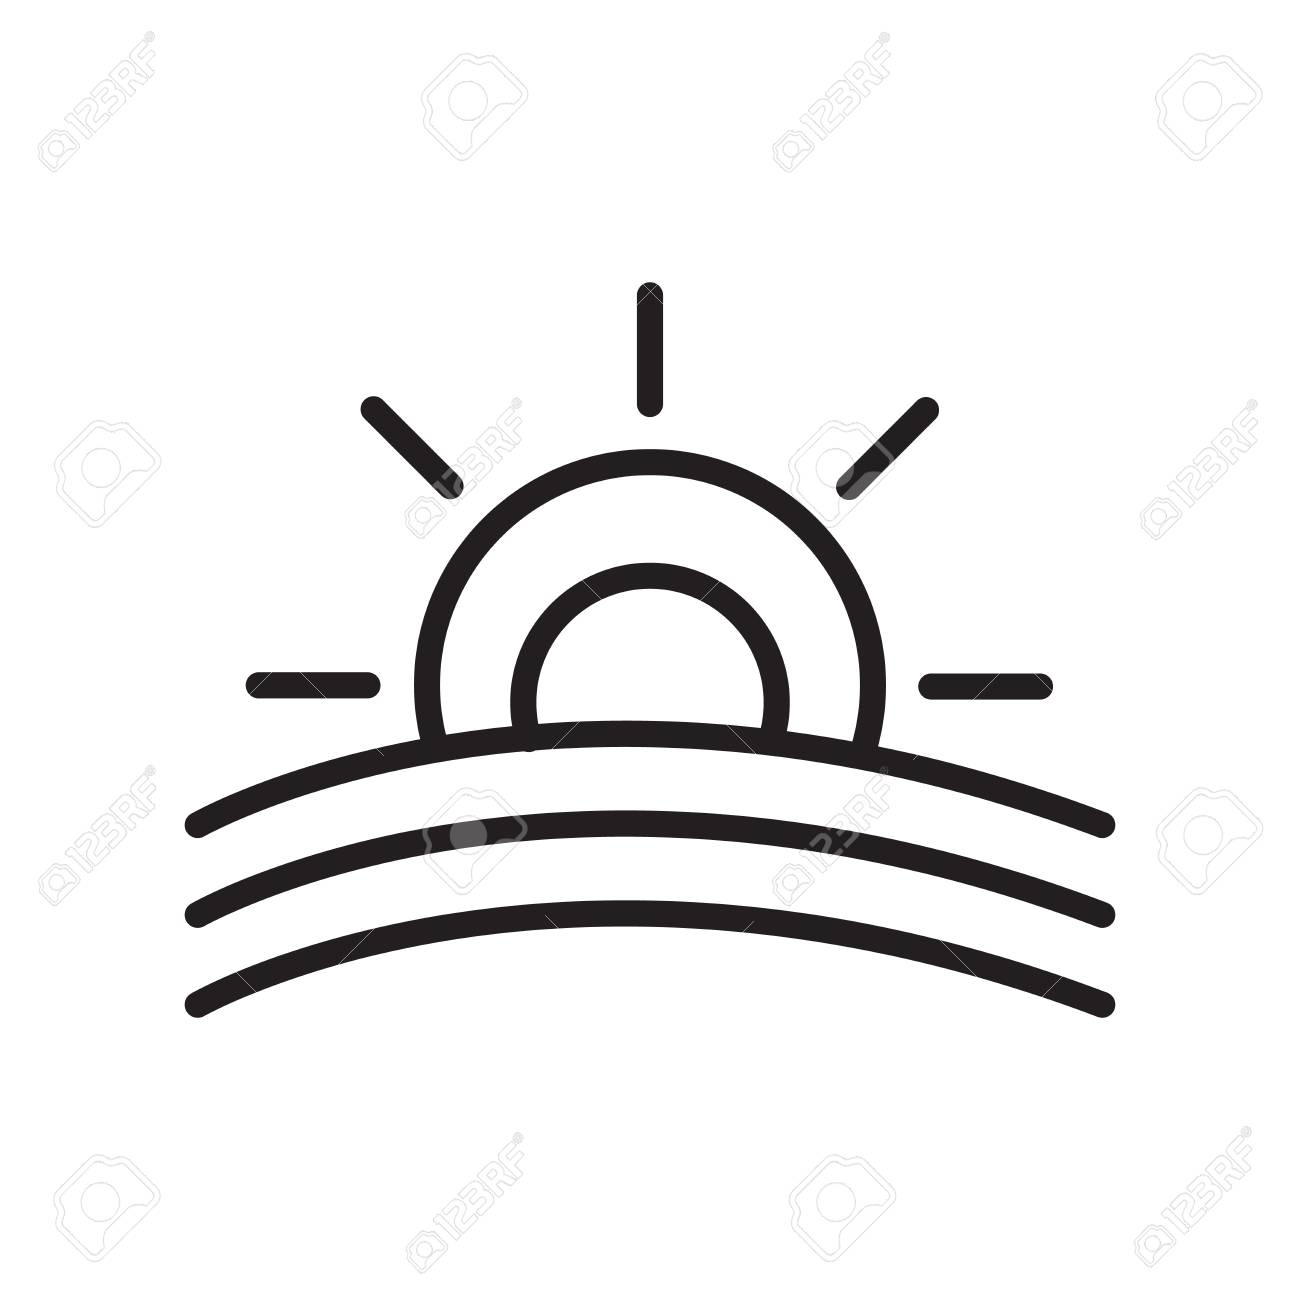 sunset icon vector isolated on white background sunset transparent royalty free cliparts vectors and stock illustration image 106757996 sunset icon vector isolated on white background sunset transparent